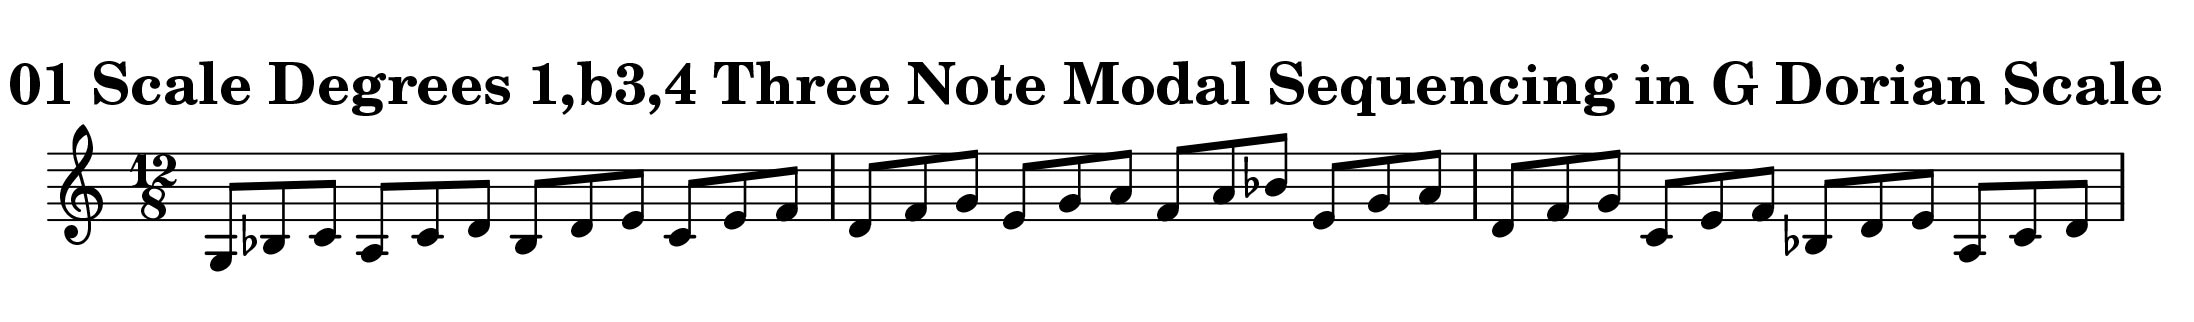 Three Note Modal Sequence Ascending and Descending in G Dorian by Bruce Arnold for Muse Eek Publishing